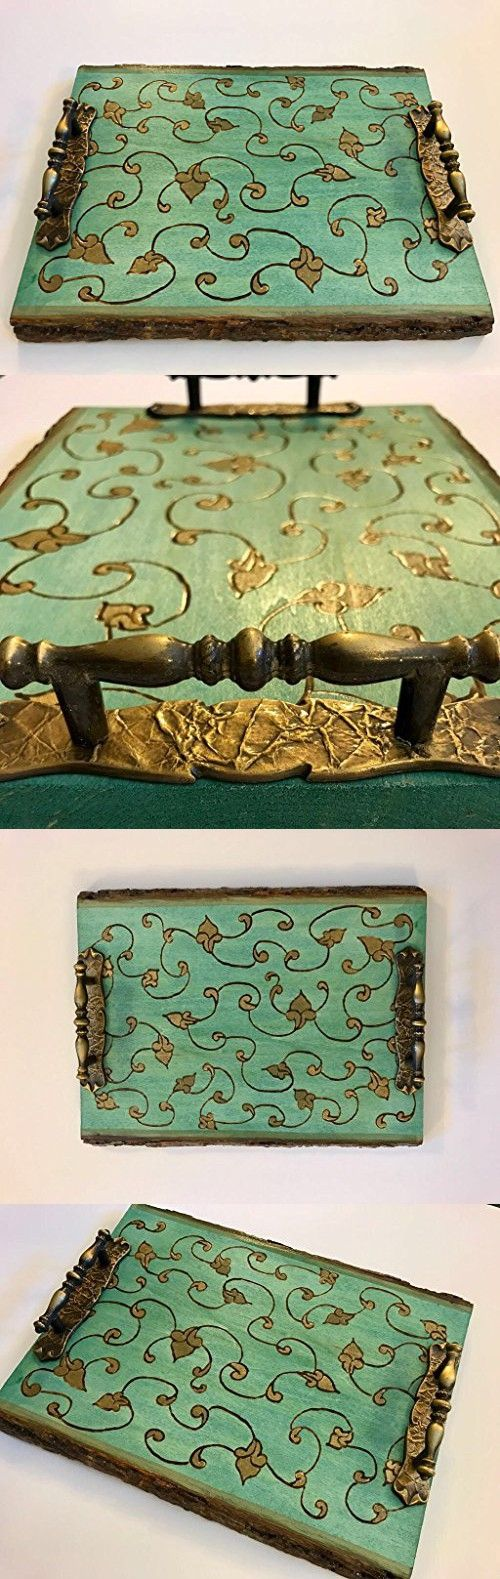 Decorative Ottoman Tray 428 Best Decorative Trays Images On Pinterest  Decorative Trays